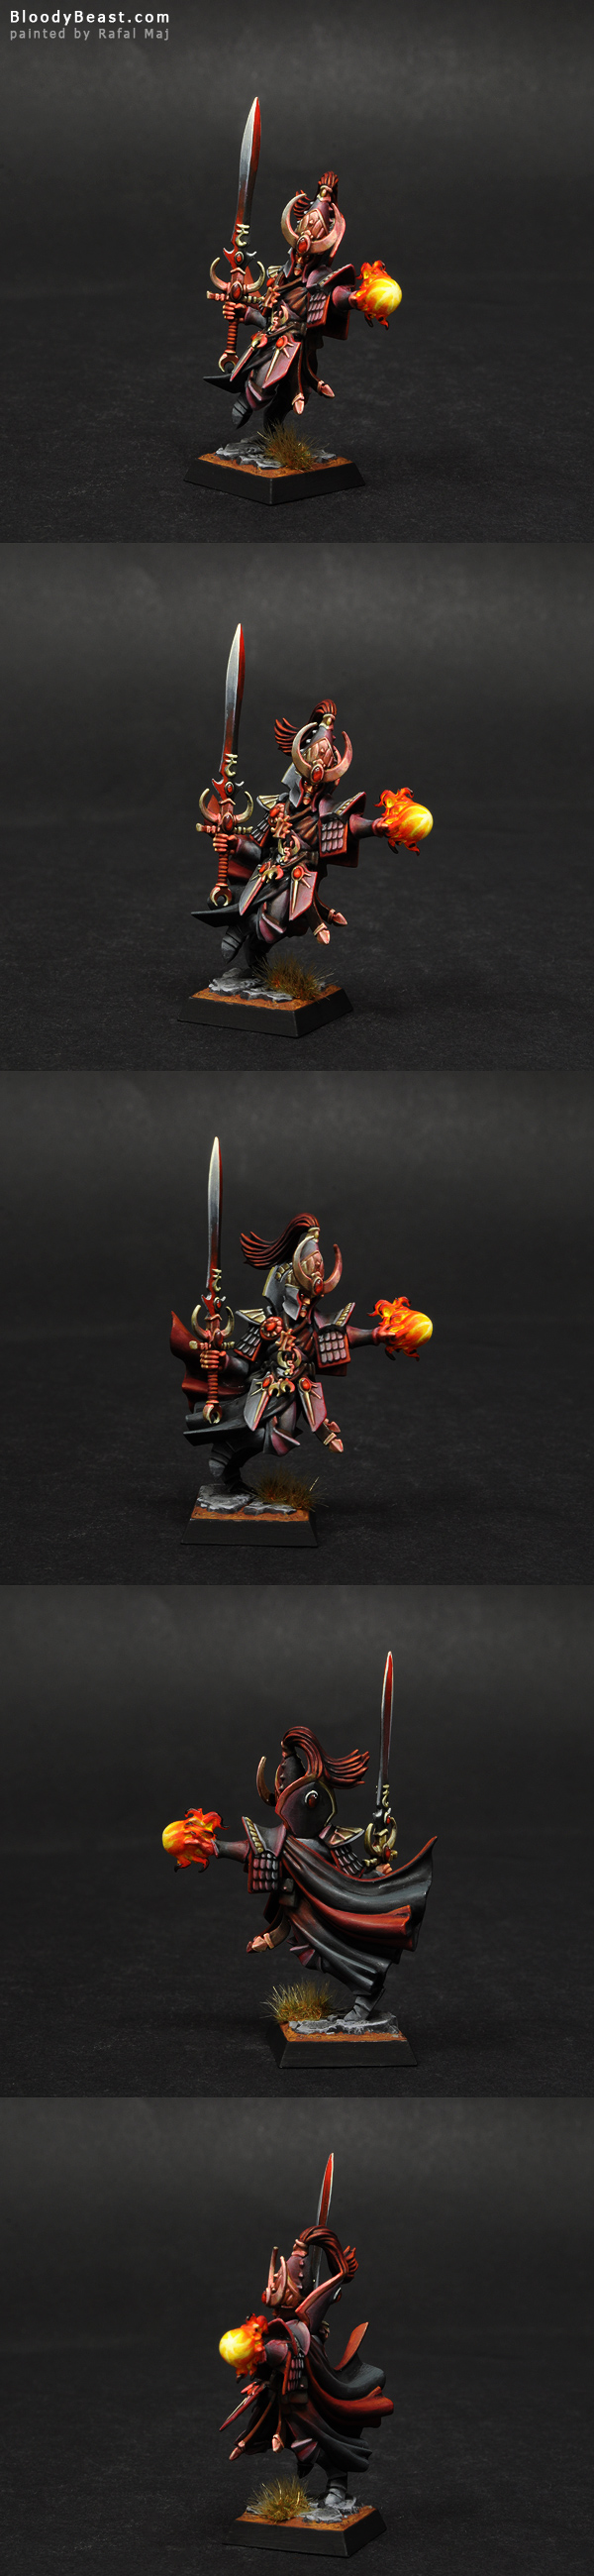 High Elf Loremaster of Hoeth painted by Rafal Maj (BloodyBeast.com)